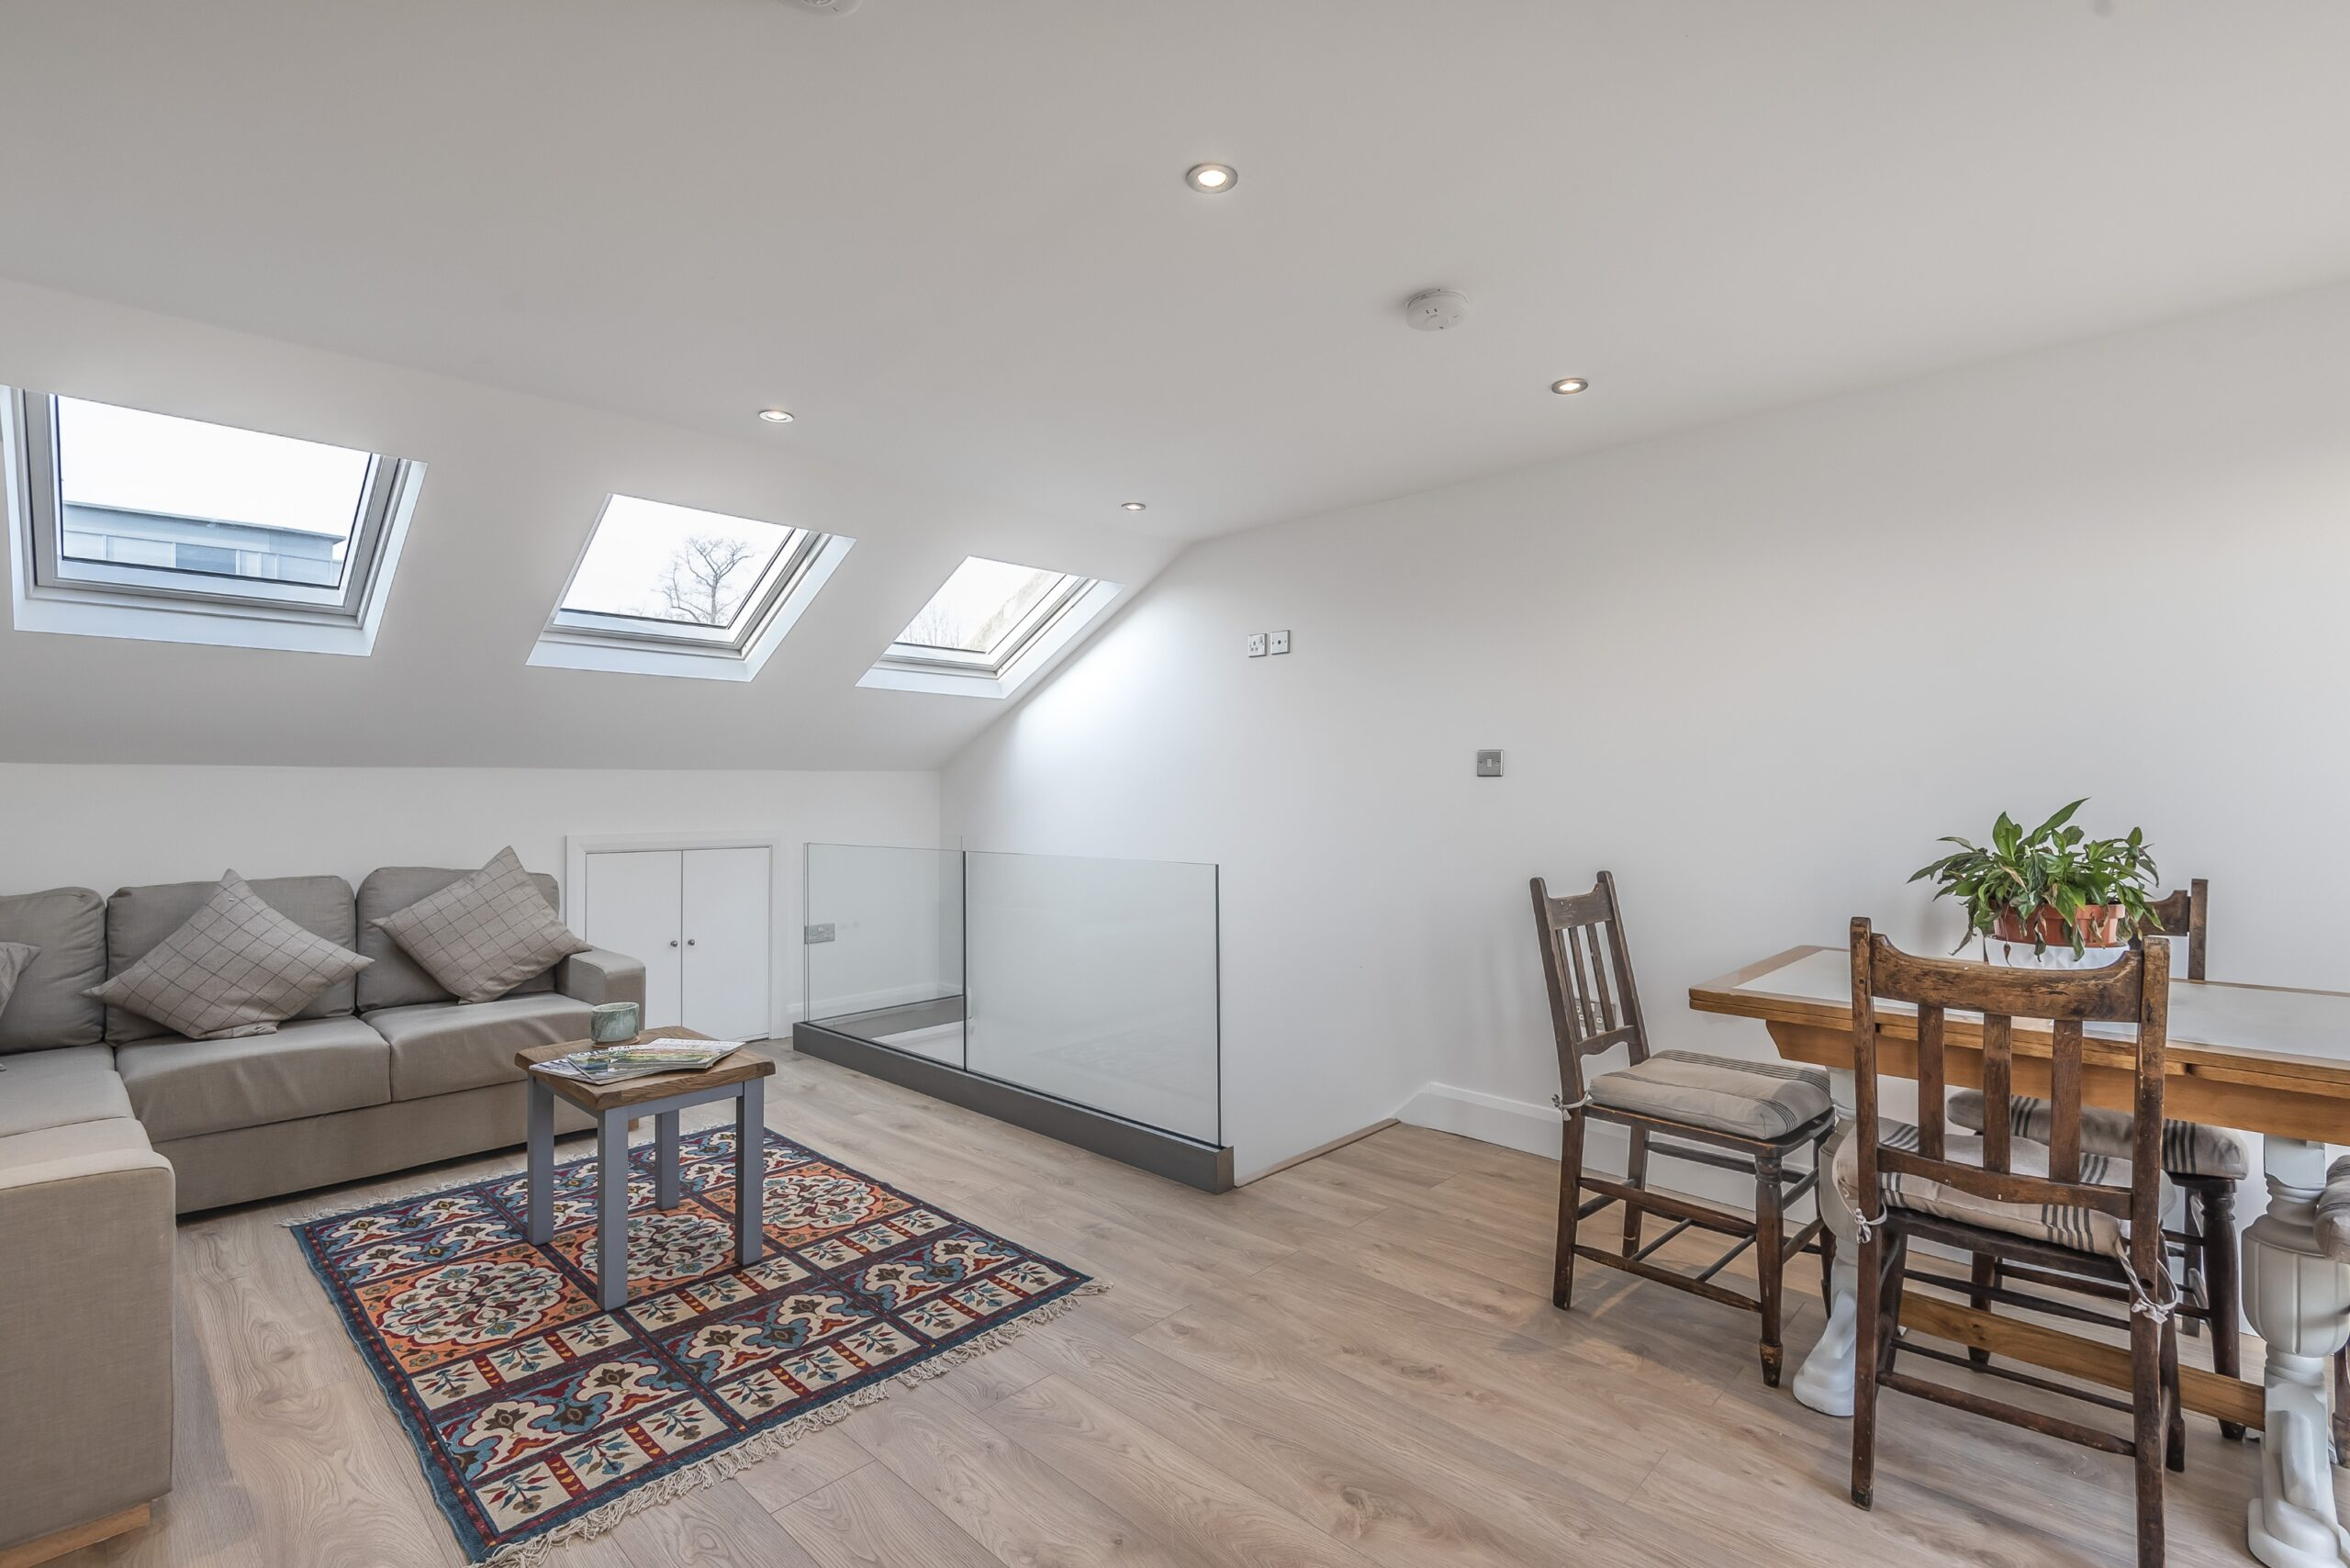 Interior Design Tips For Your Loft Conversion